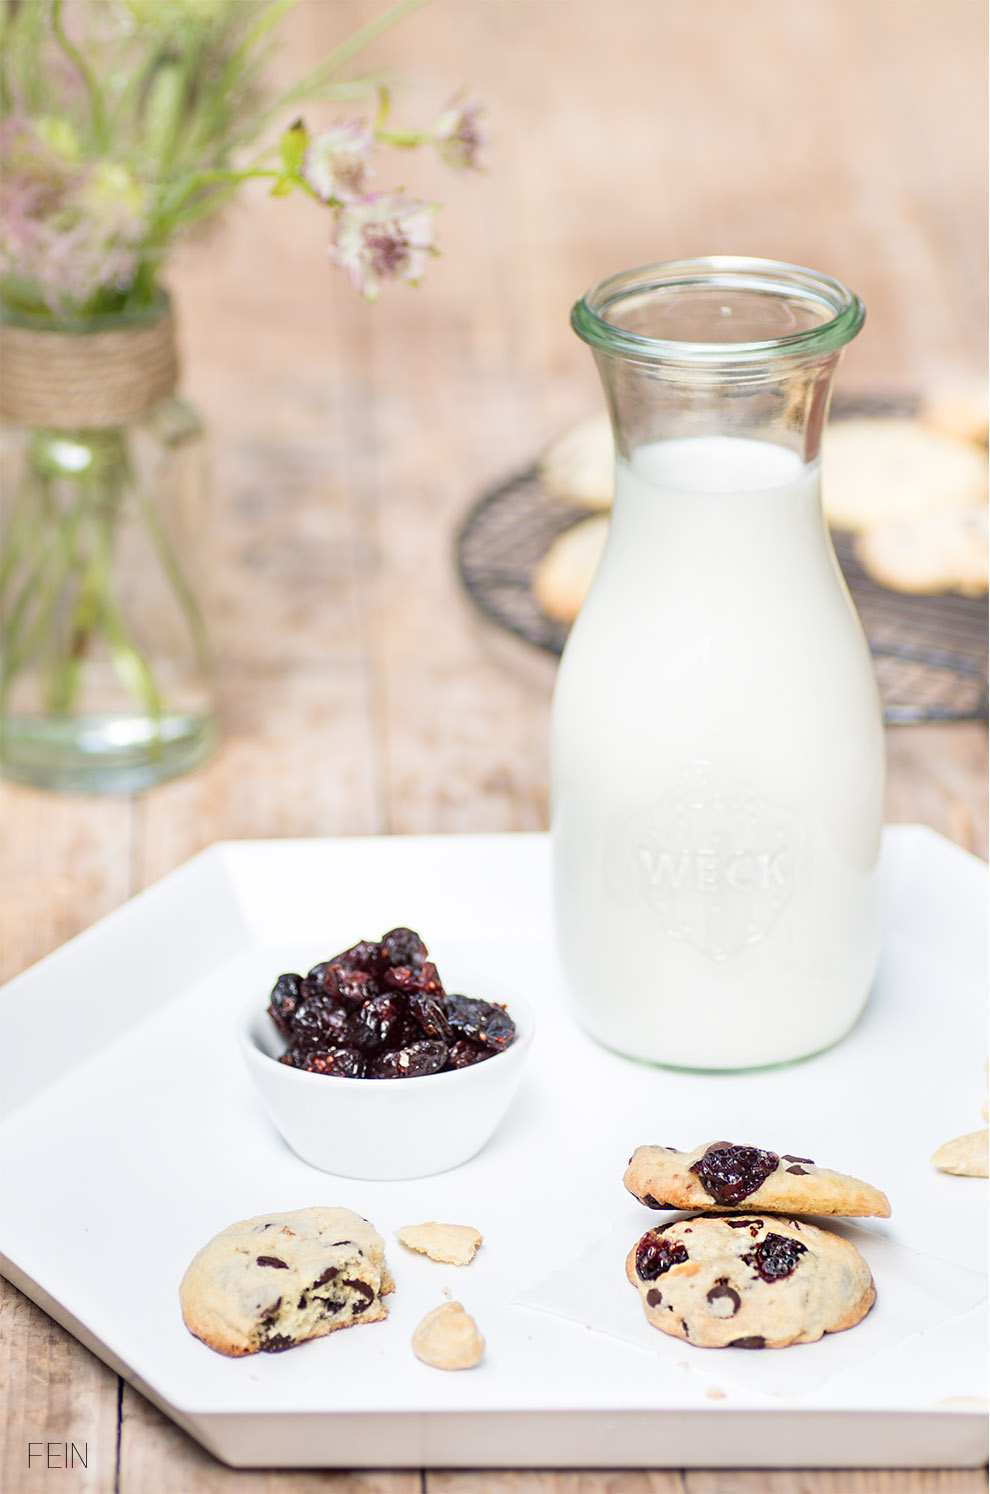 Cookies Berry Nuss Milch